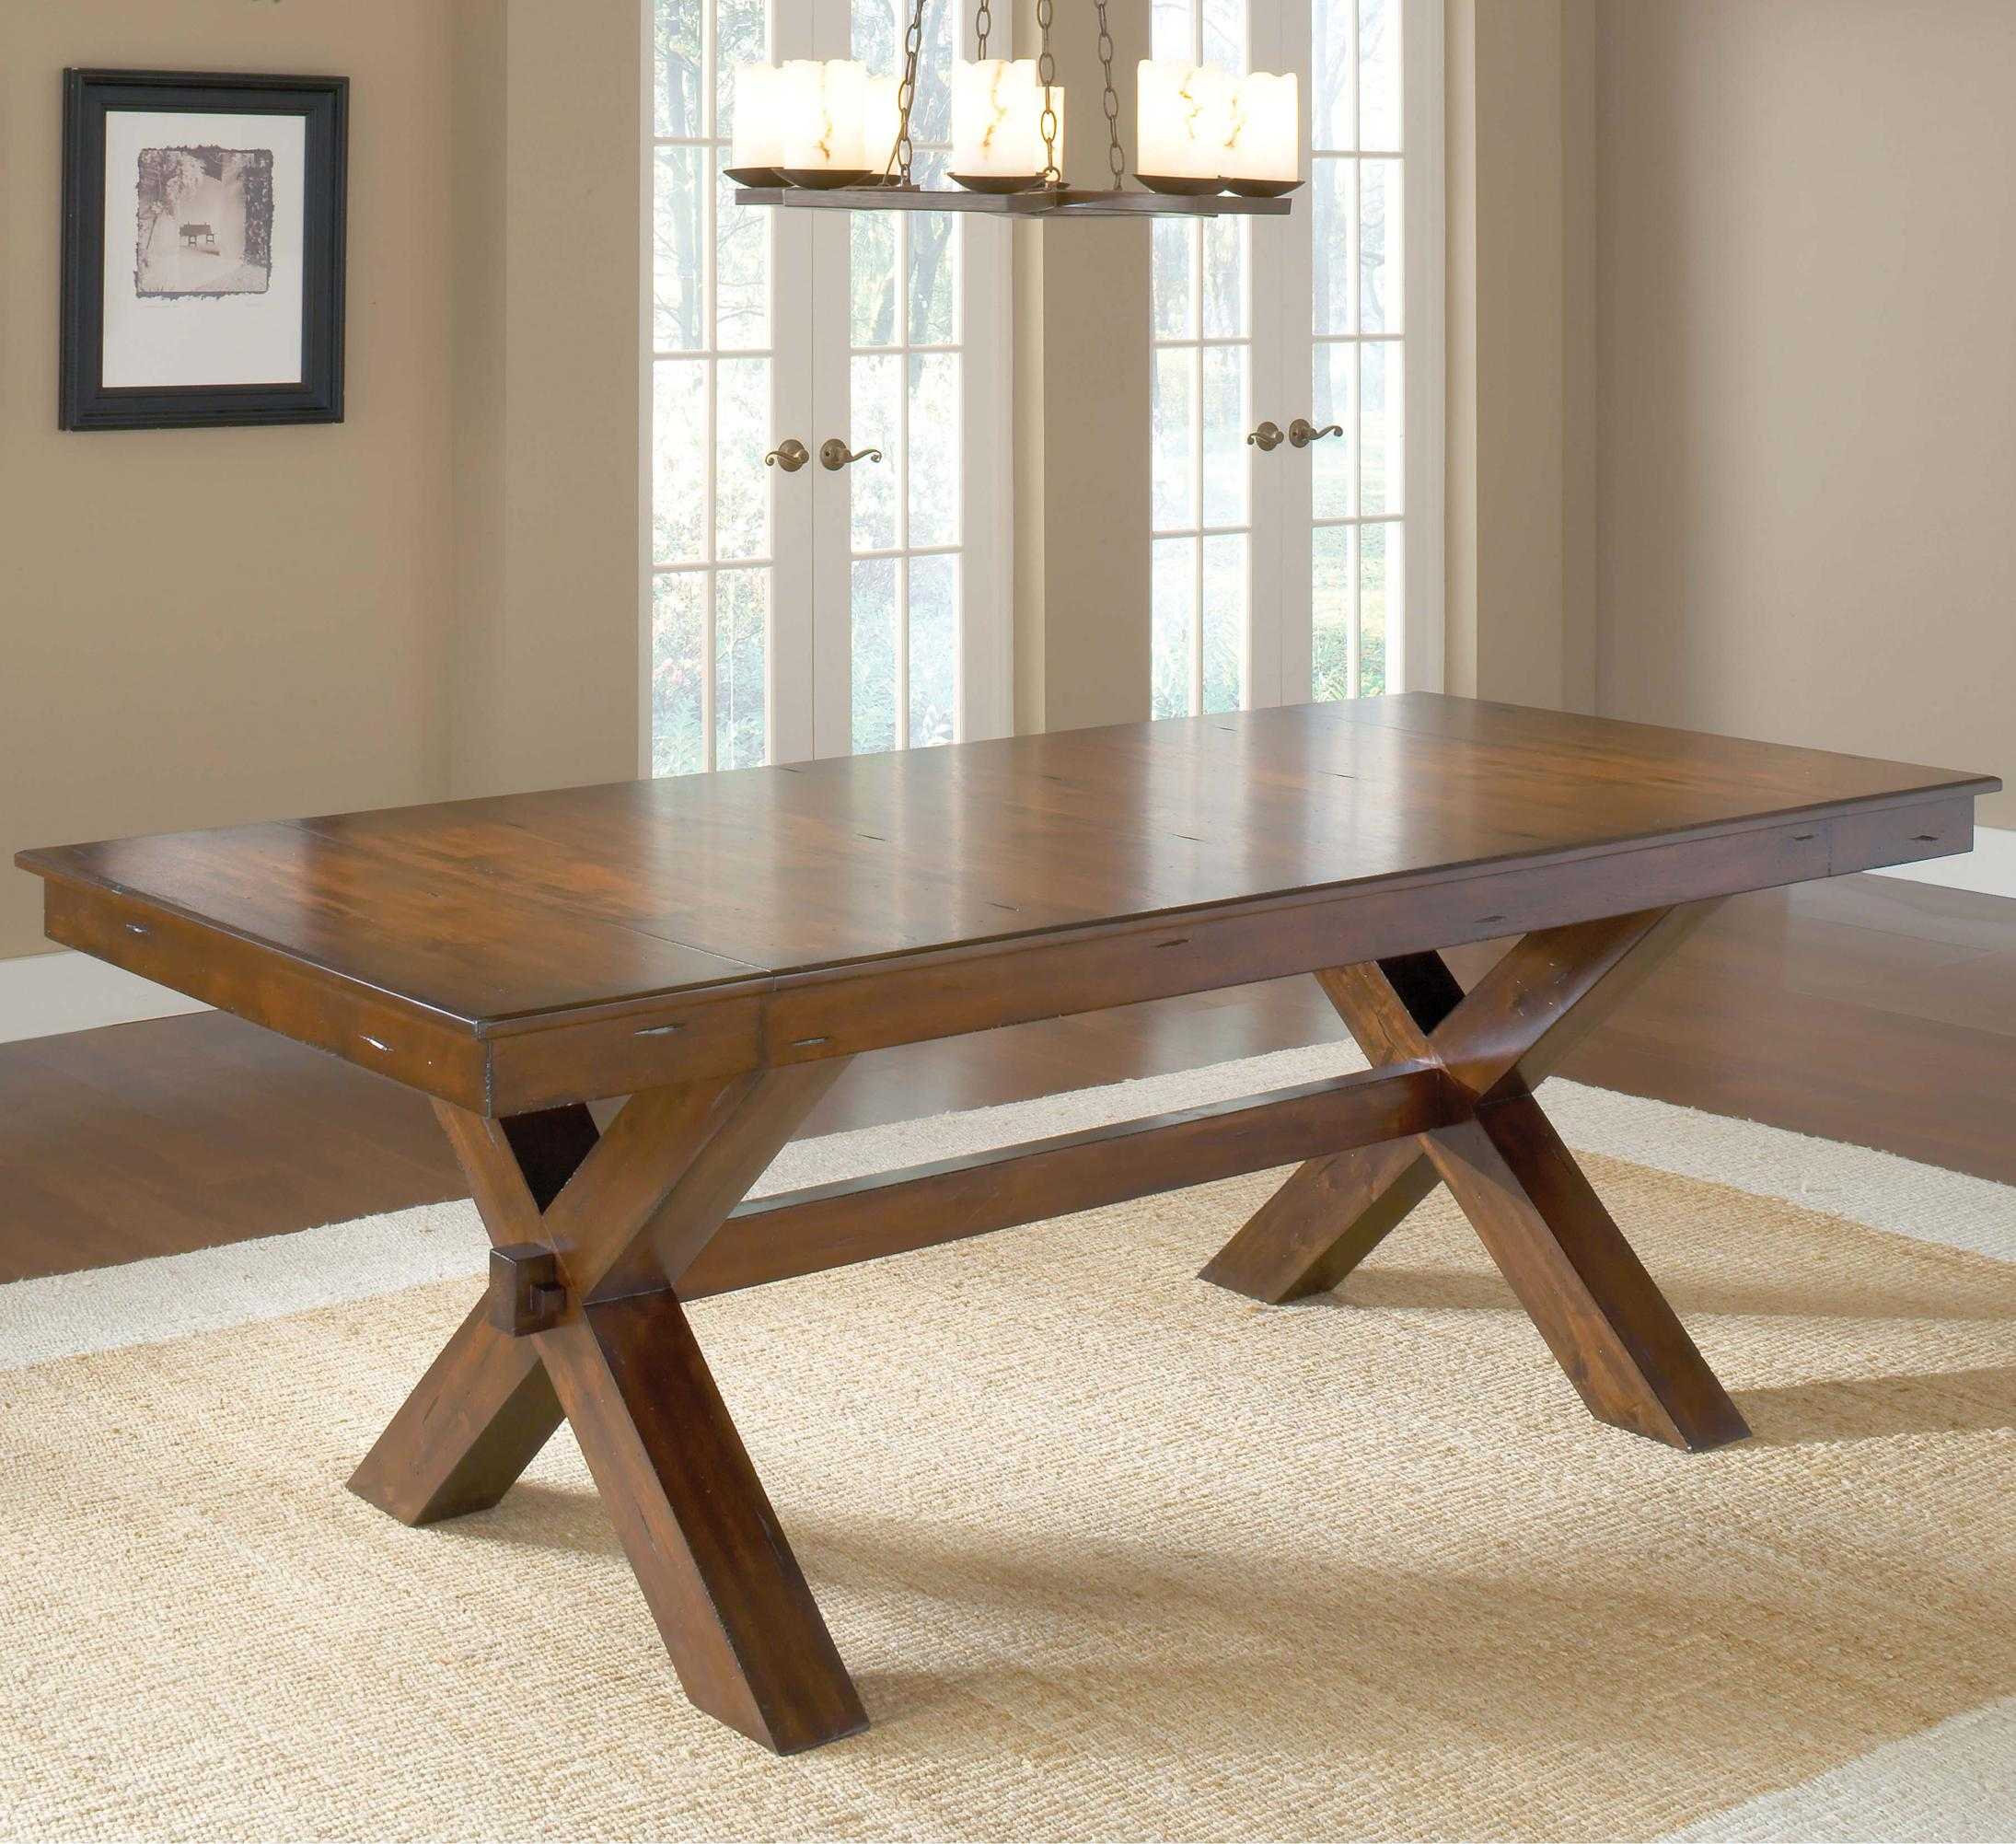 Trestle dining table w 2 leaves Trestle dining table